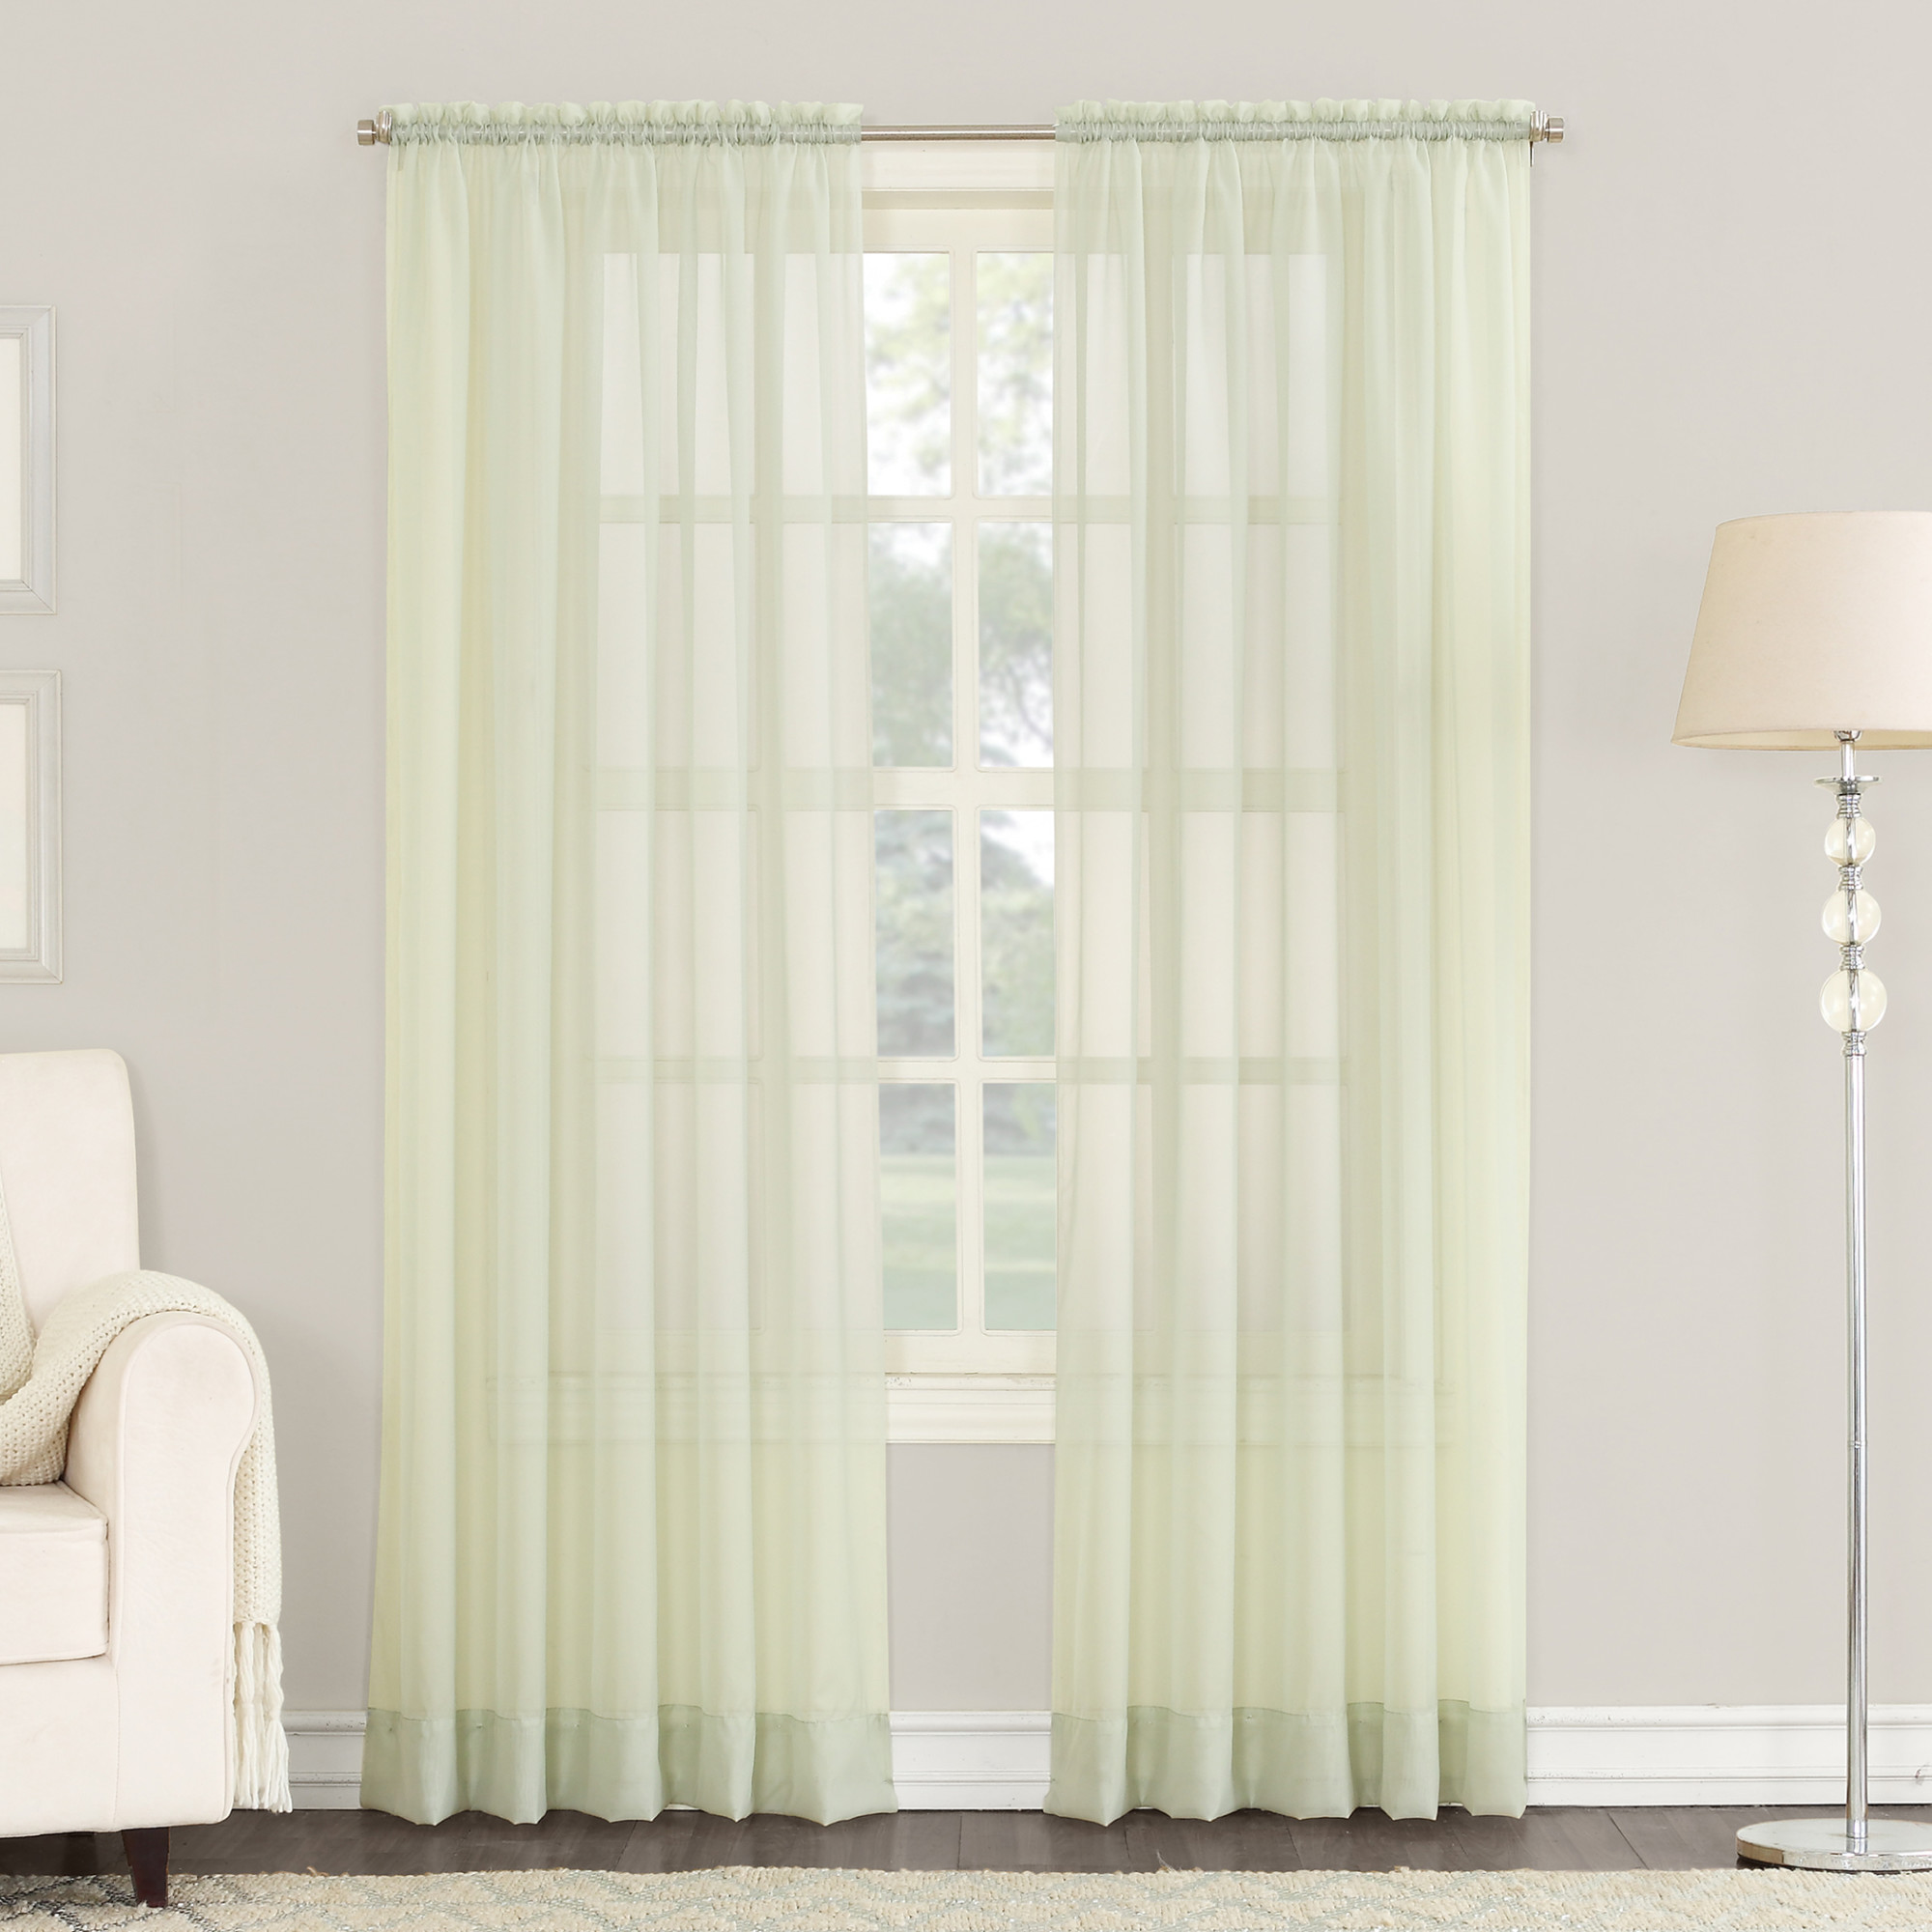 No. 918 Emily Sheer Voile Rod Pocket Curtain Panel by S. Lichtenberg